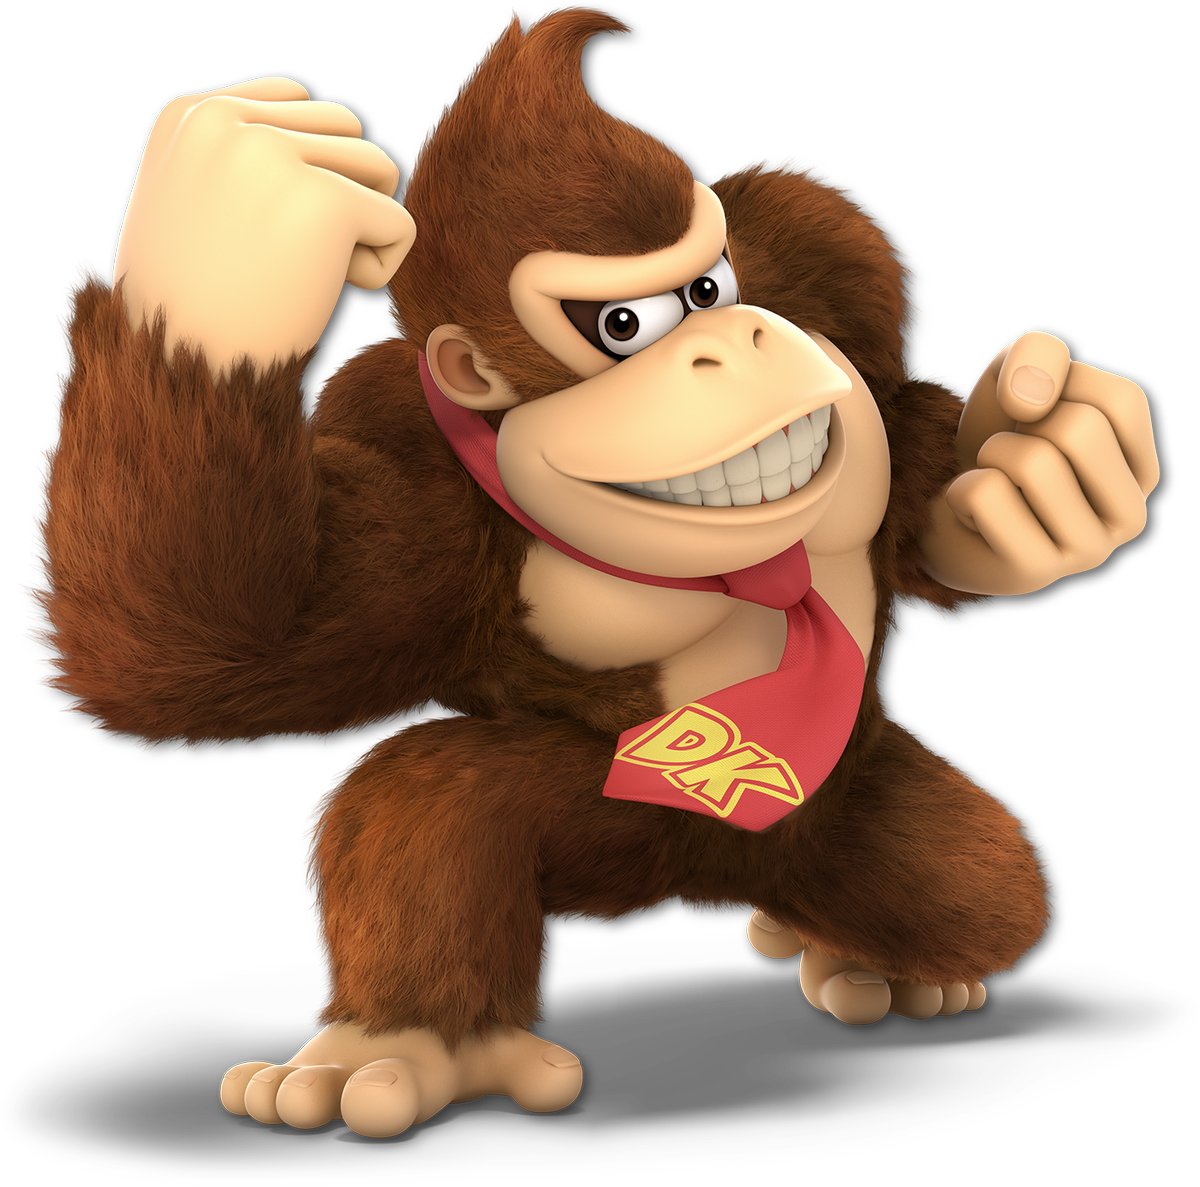 since ariana grande fans wanna get brave, let me prove a point.  who's more influential? rt for donkey kong✨💕✨ like for ariana grande.🤢